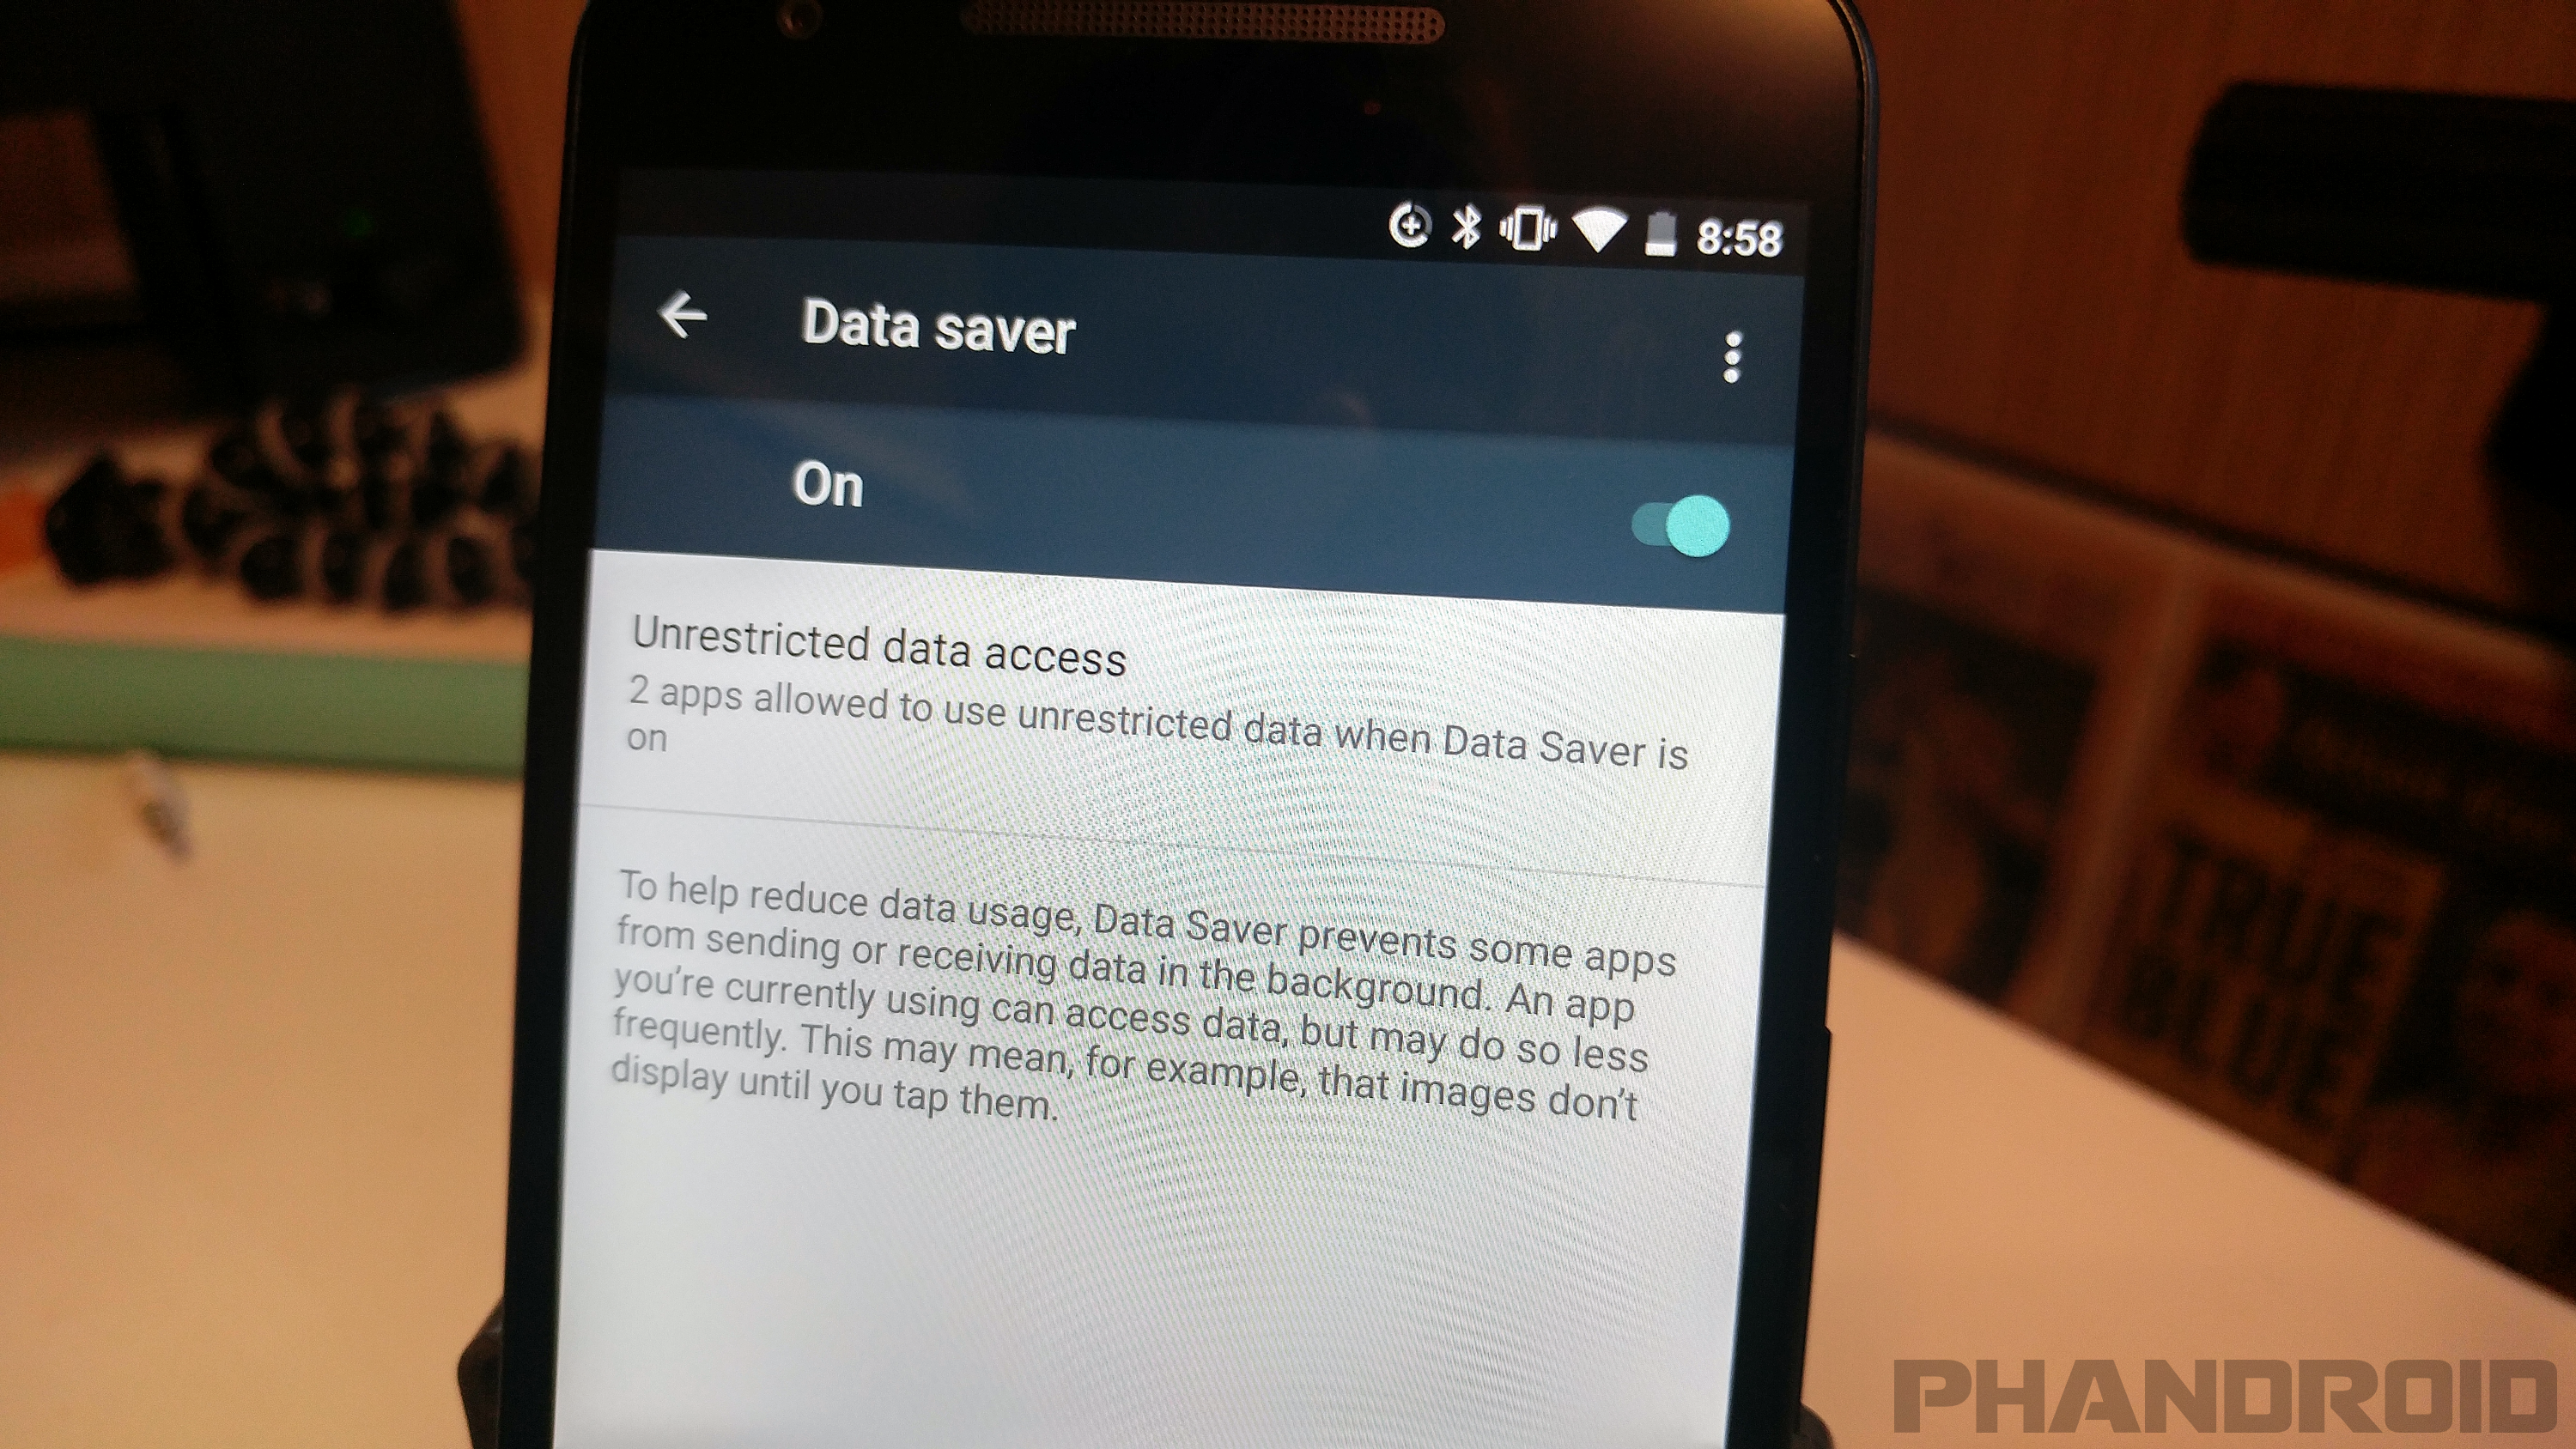 5. Restrict apps from using data in the background